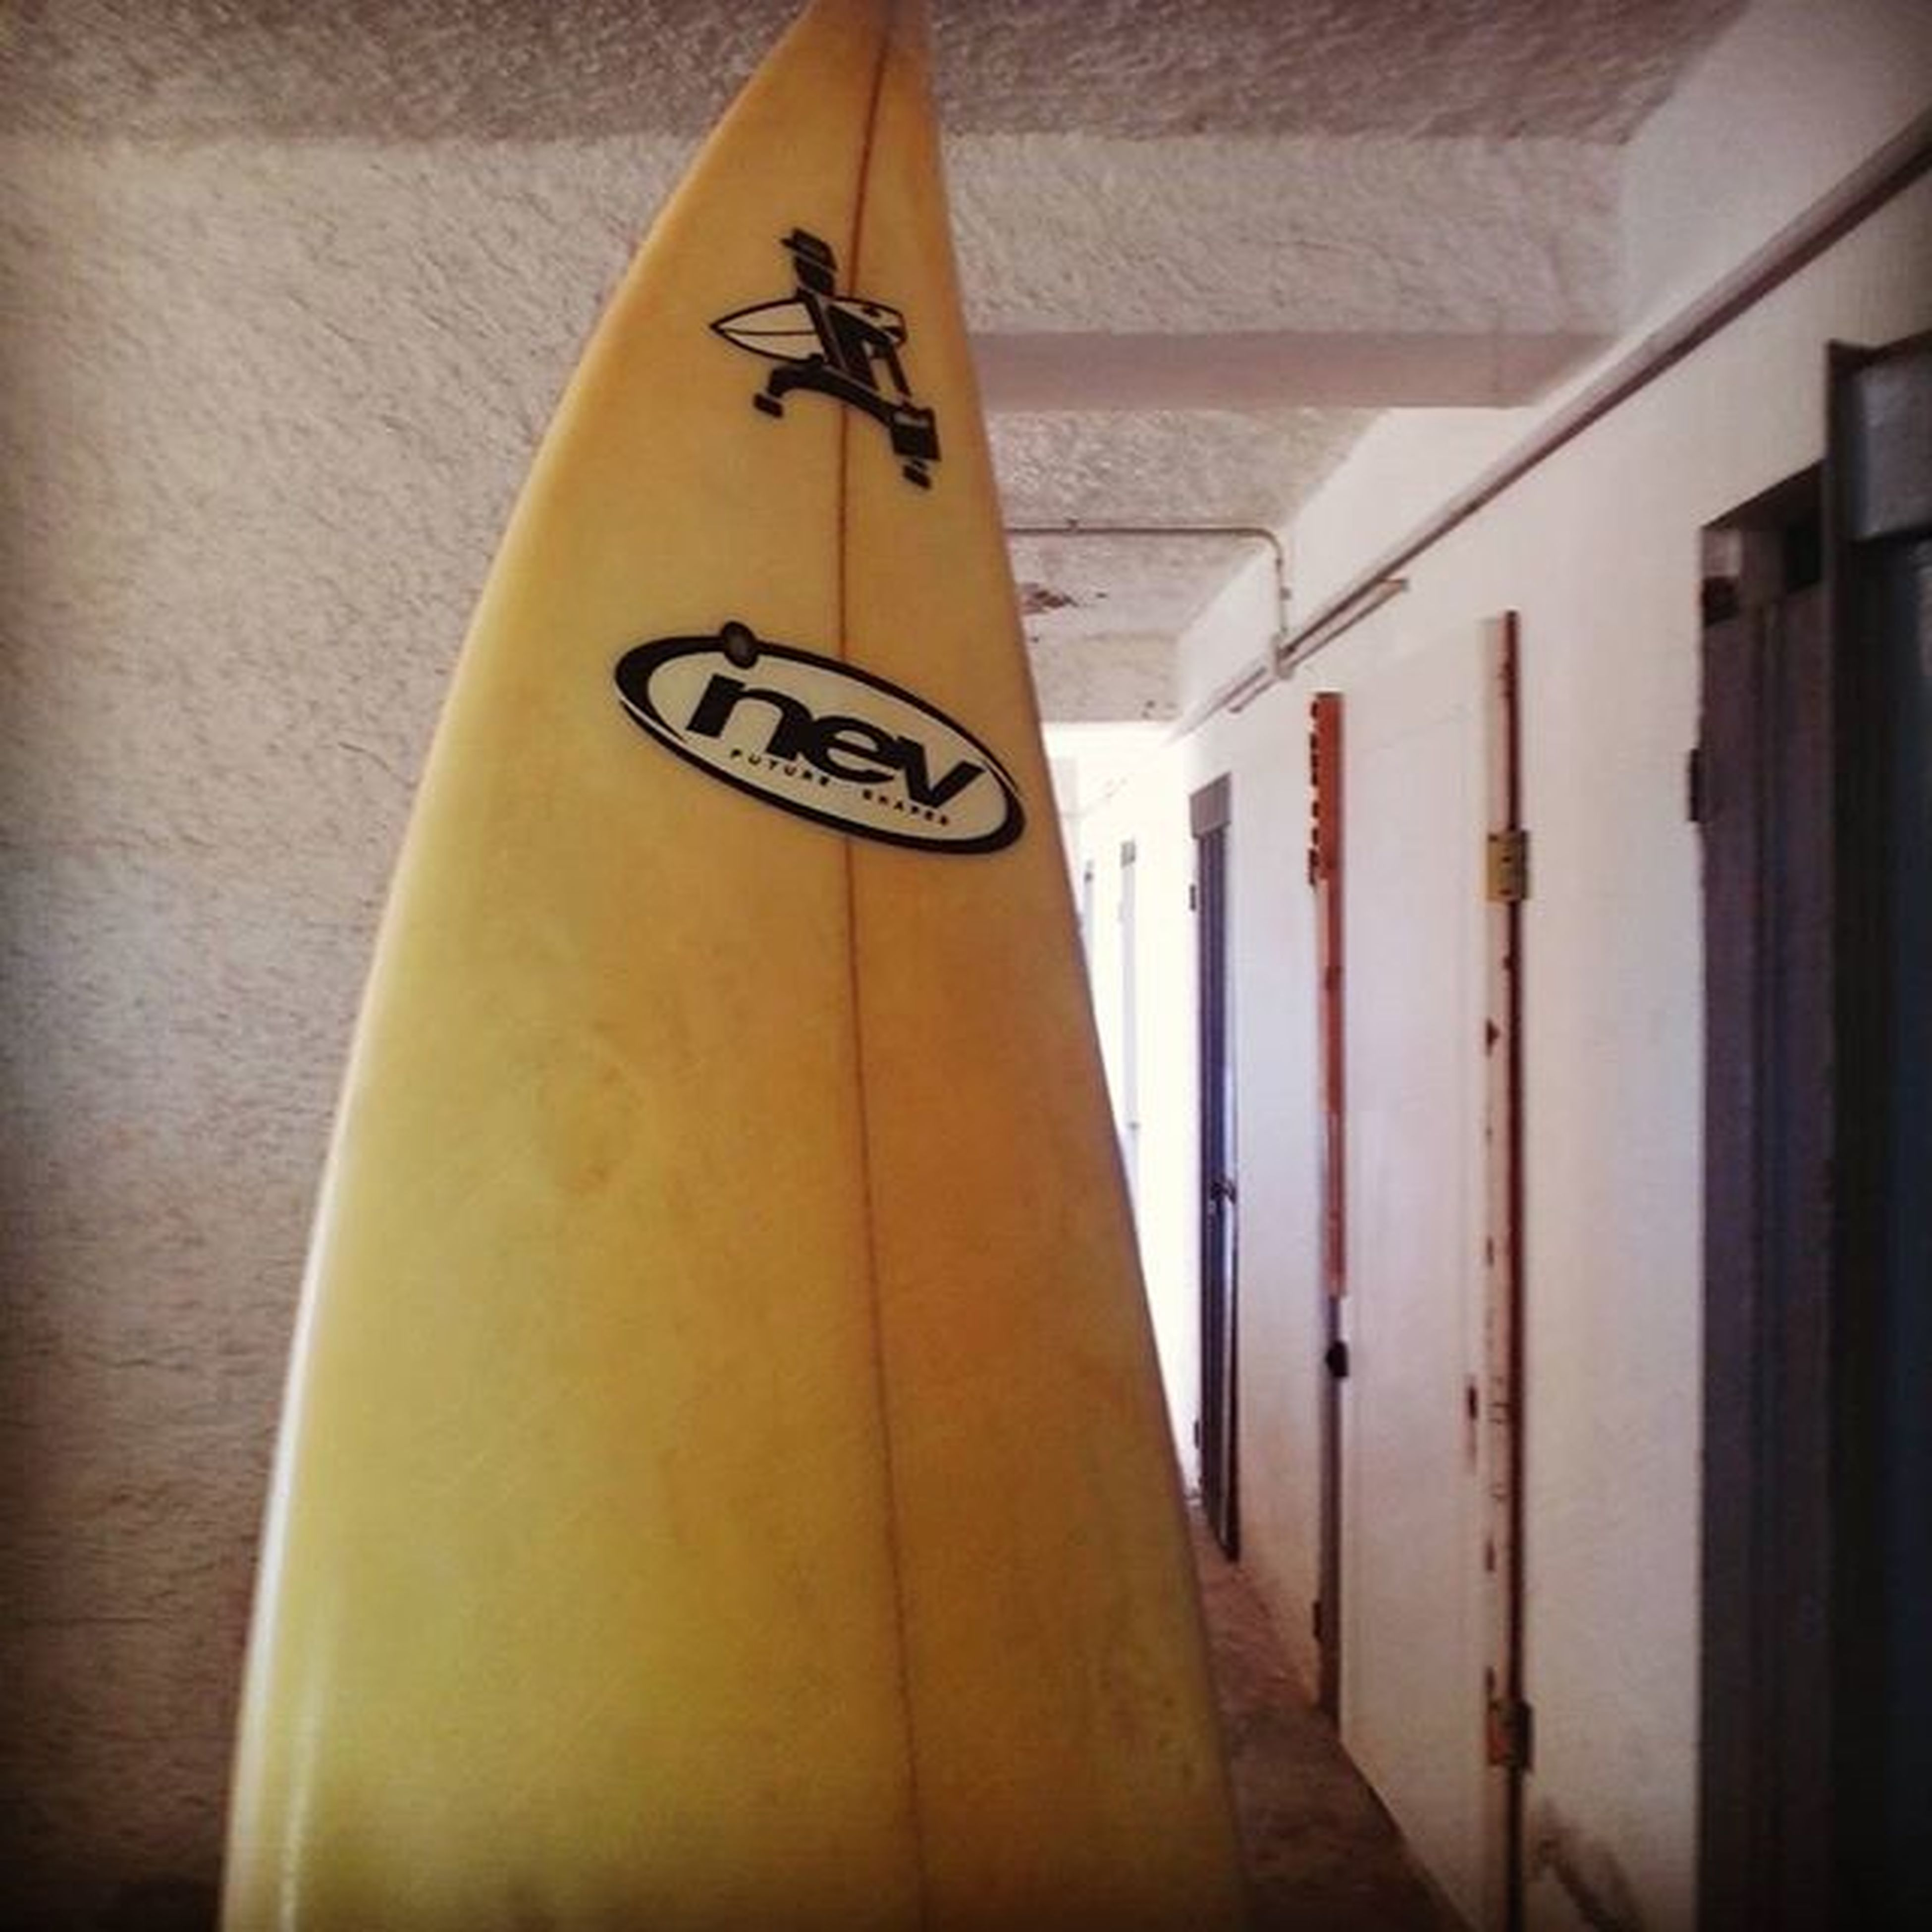 Lei si che mi capisce Surfproject Surfing Surferlife Wave Sea Lovethemoment Alldayatthebeach Summersession Everywhere Arethewave Imustbecrazy Like Picoftheday